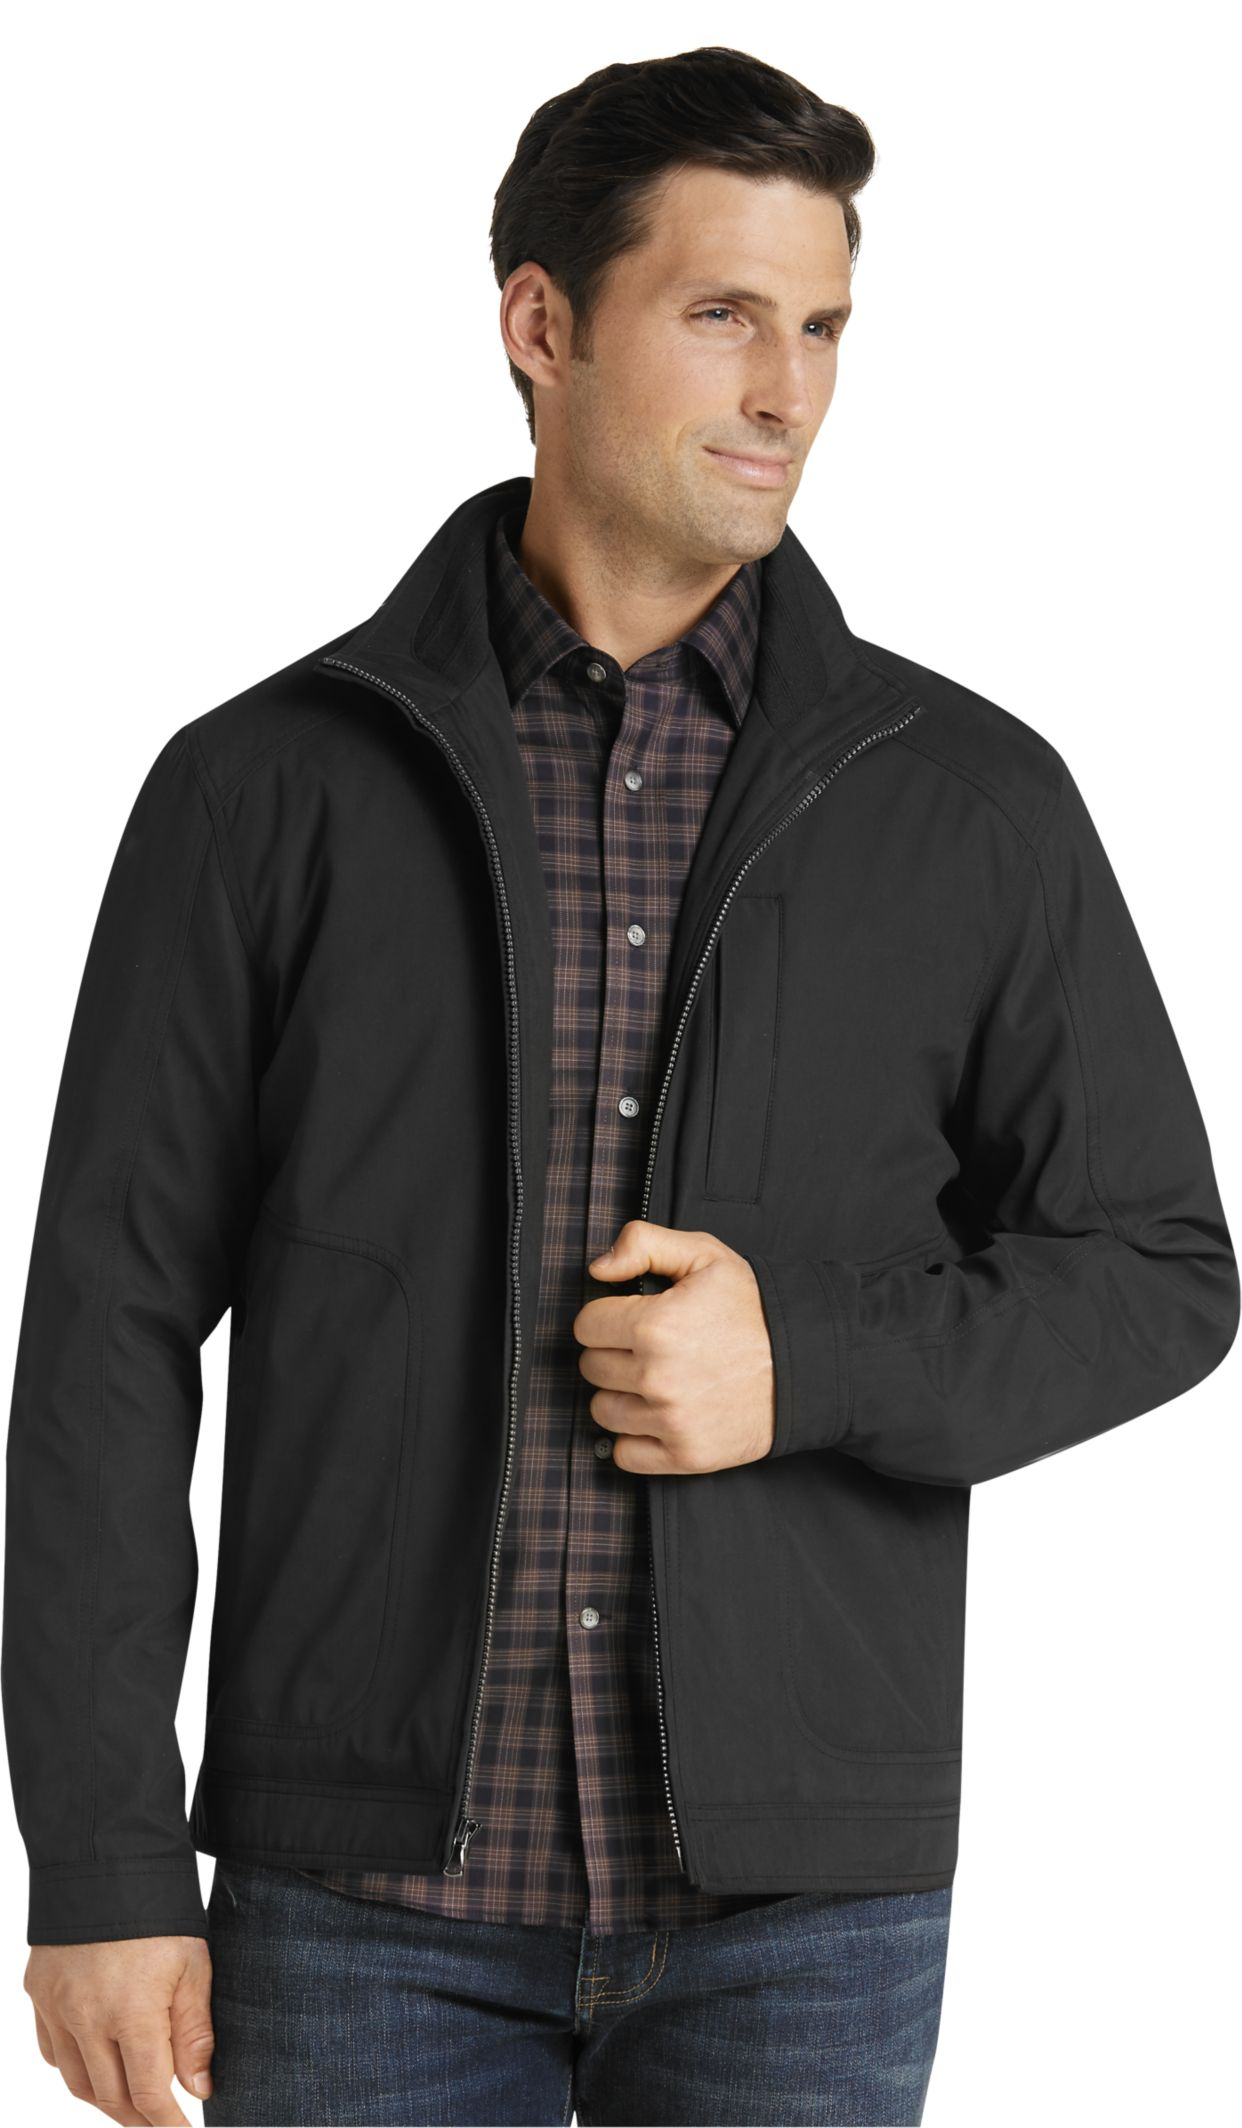 Men's Quilted Vests & Coats | Men's Outerwear | JoS. A. Bank : quilted mens jacket outerwear - Adamdwight.com